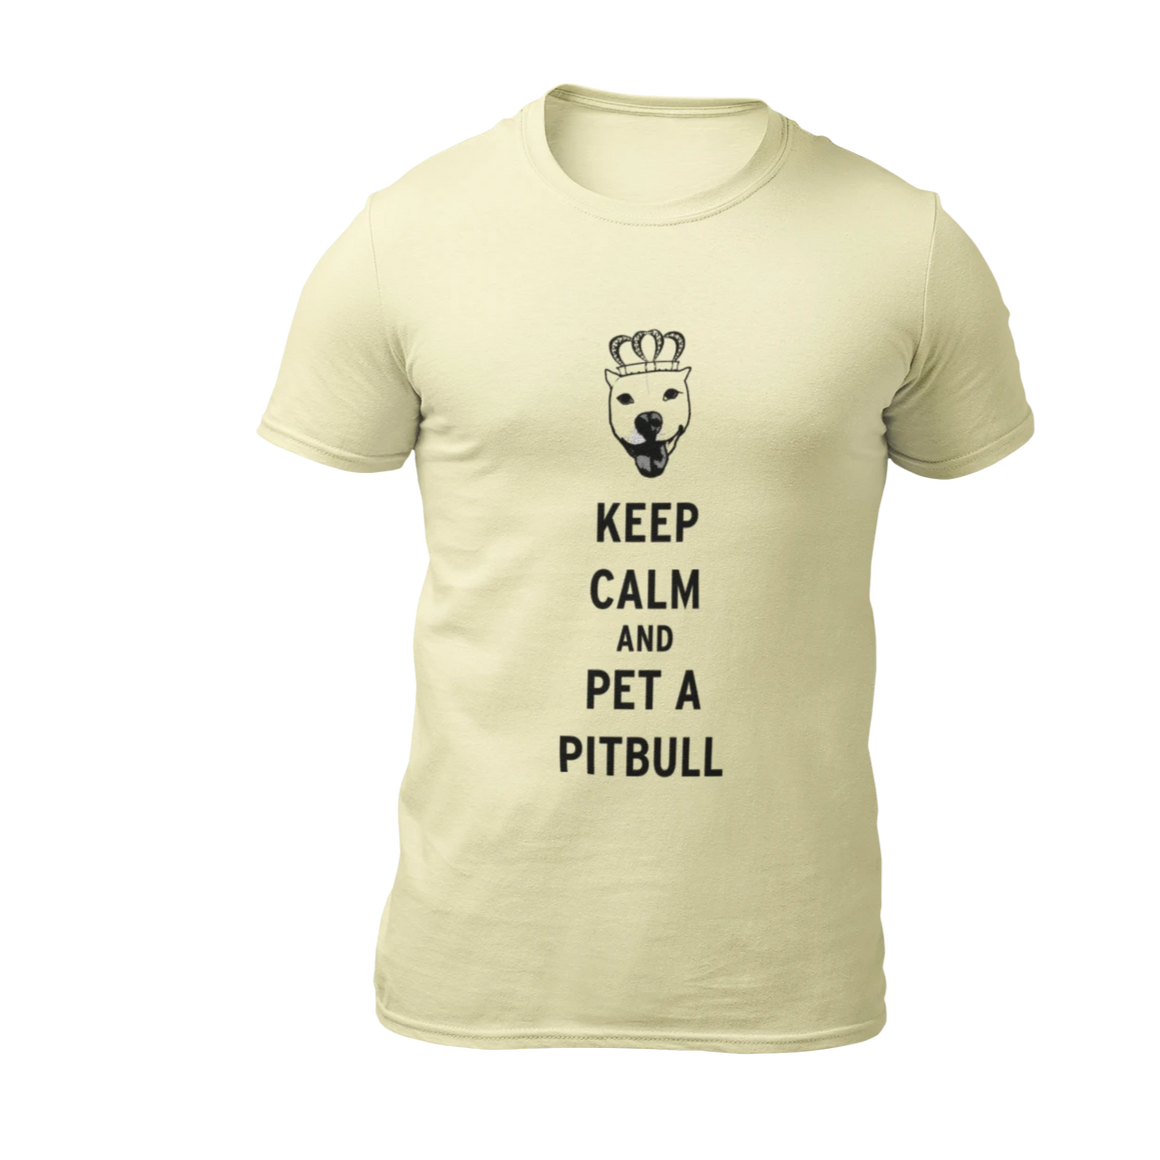 Keep Calm and Pet A Pitbull - Cream